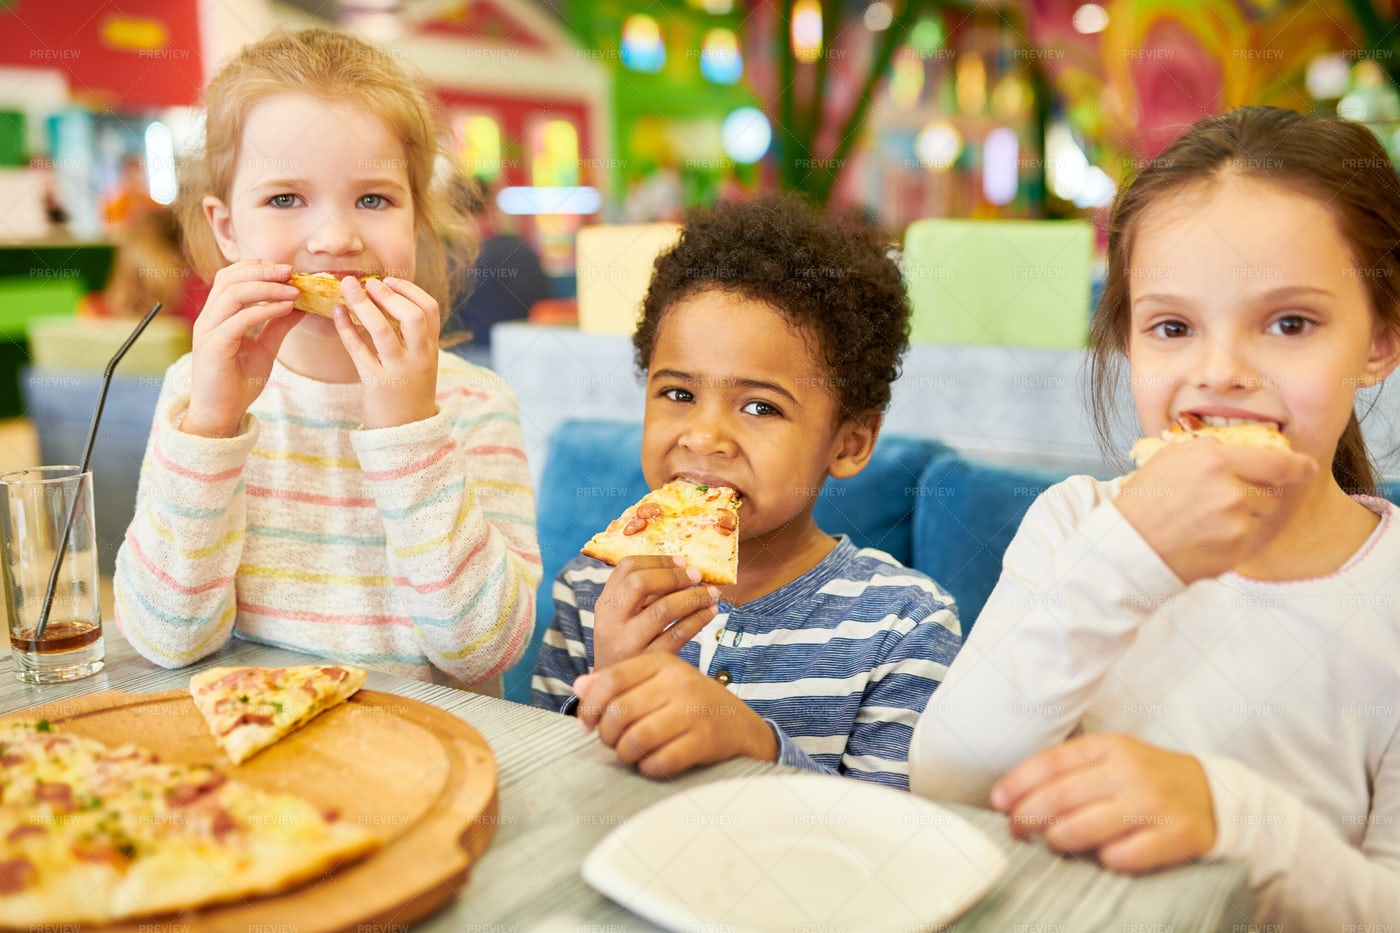 Children Eating Pizza In Cafe: Stock Photos